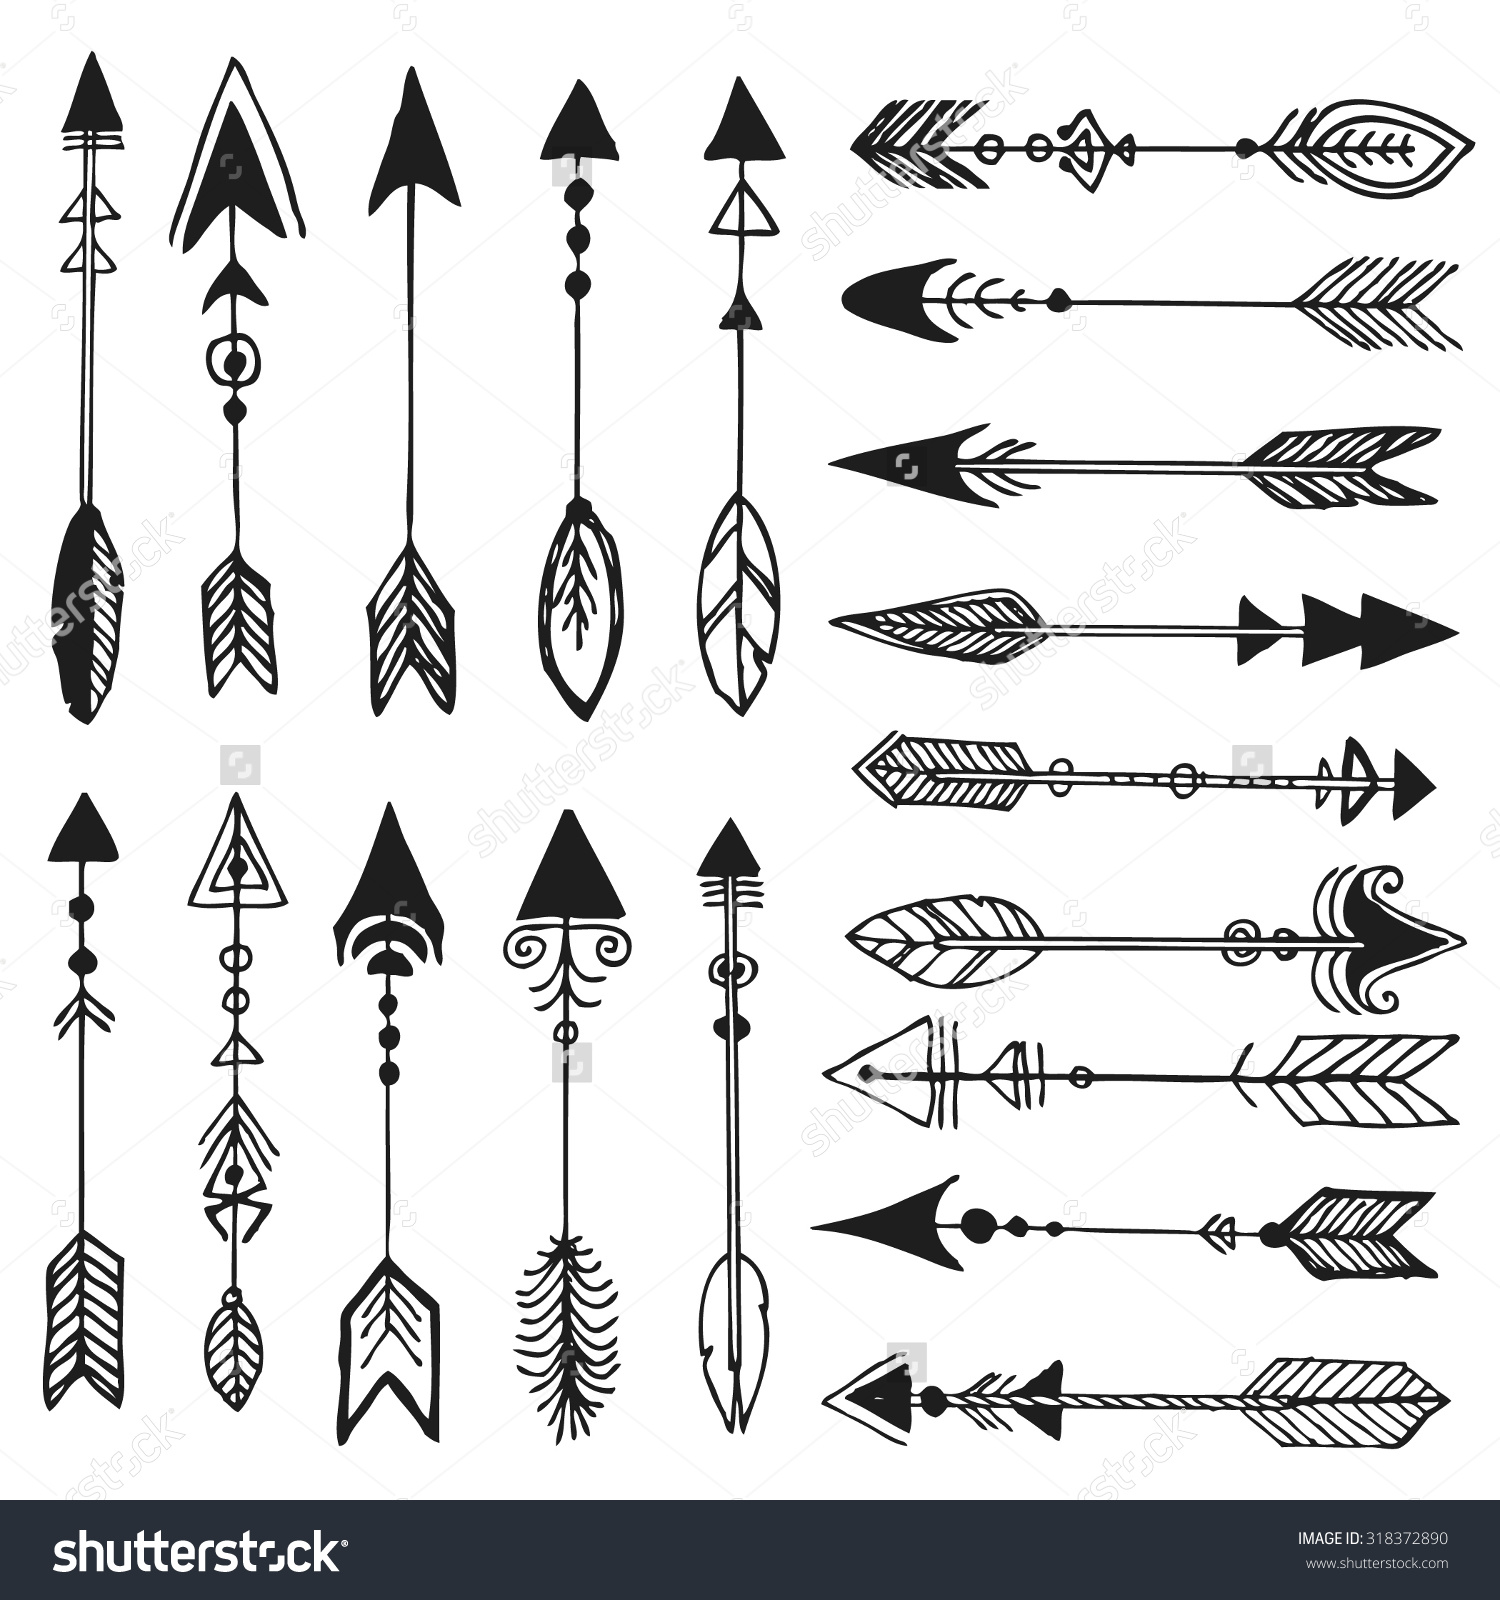 Tribal arrow clipart vector png black and white library Hand Drawn Doodle Tribal Arrows Hipster Stock Vector 318372890 ... png black and white library